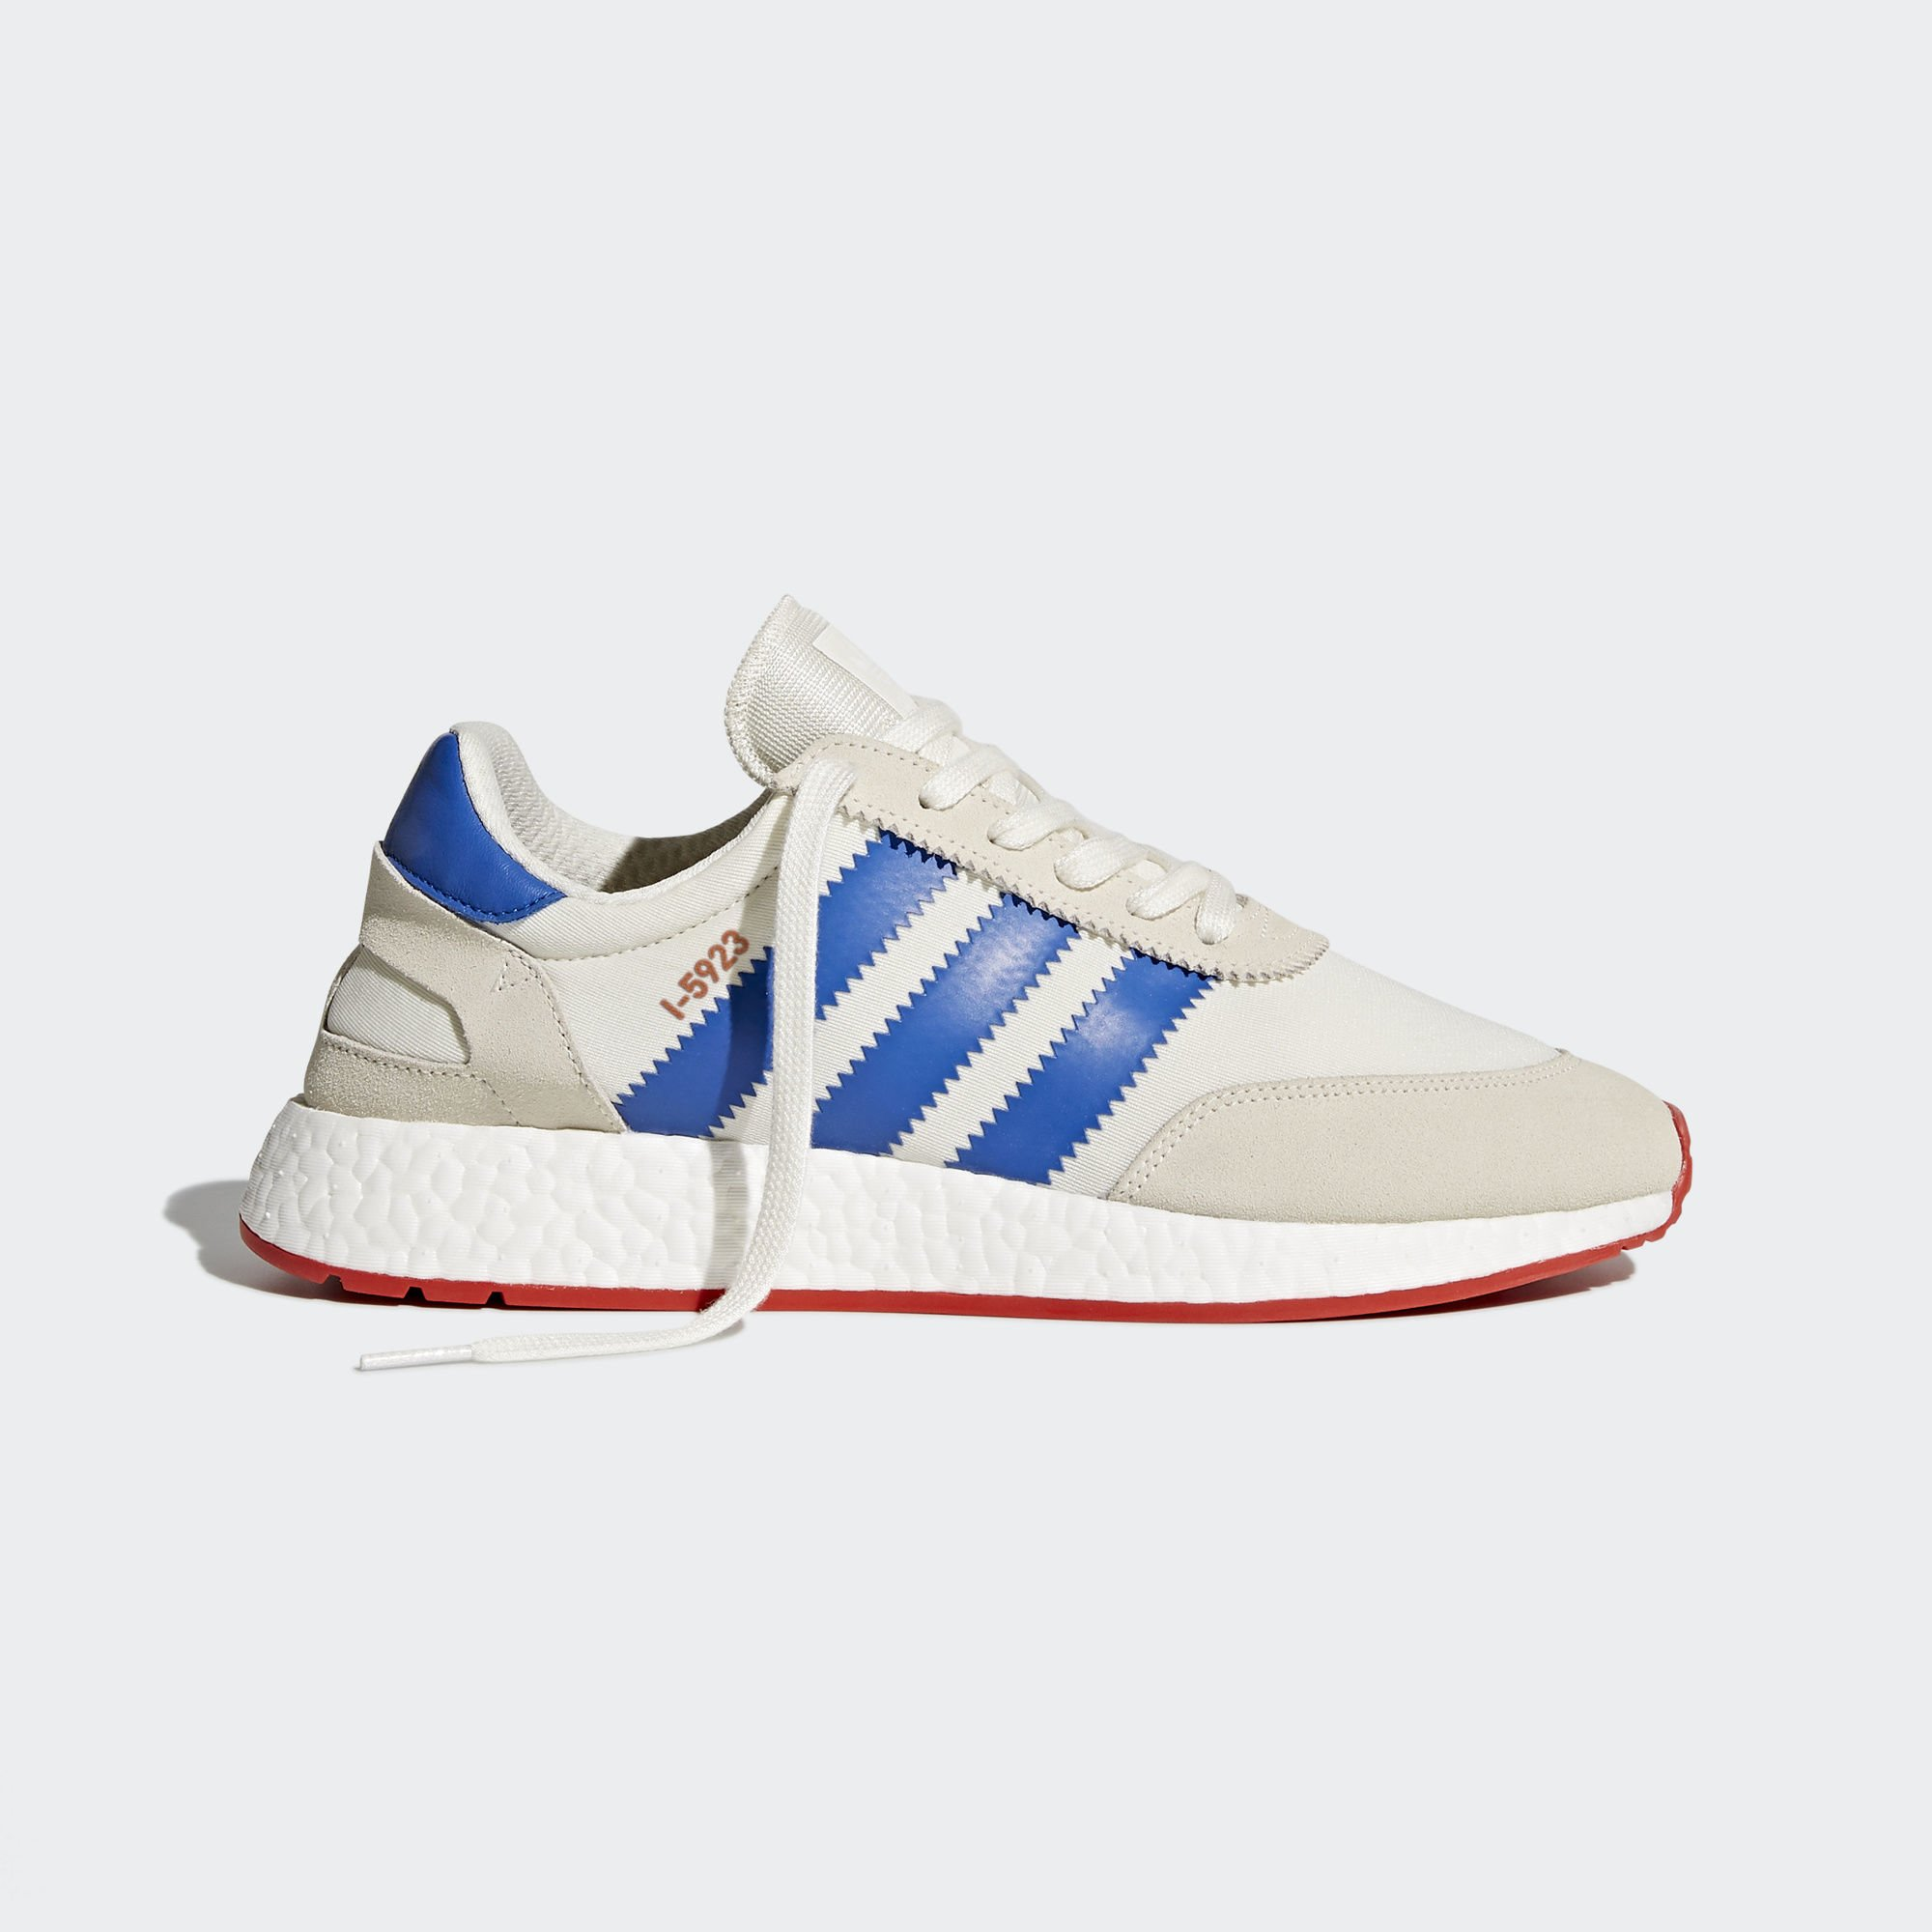 adidas Iniki Runner White Navy (BB2093)